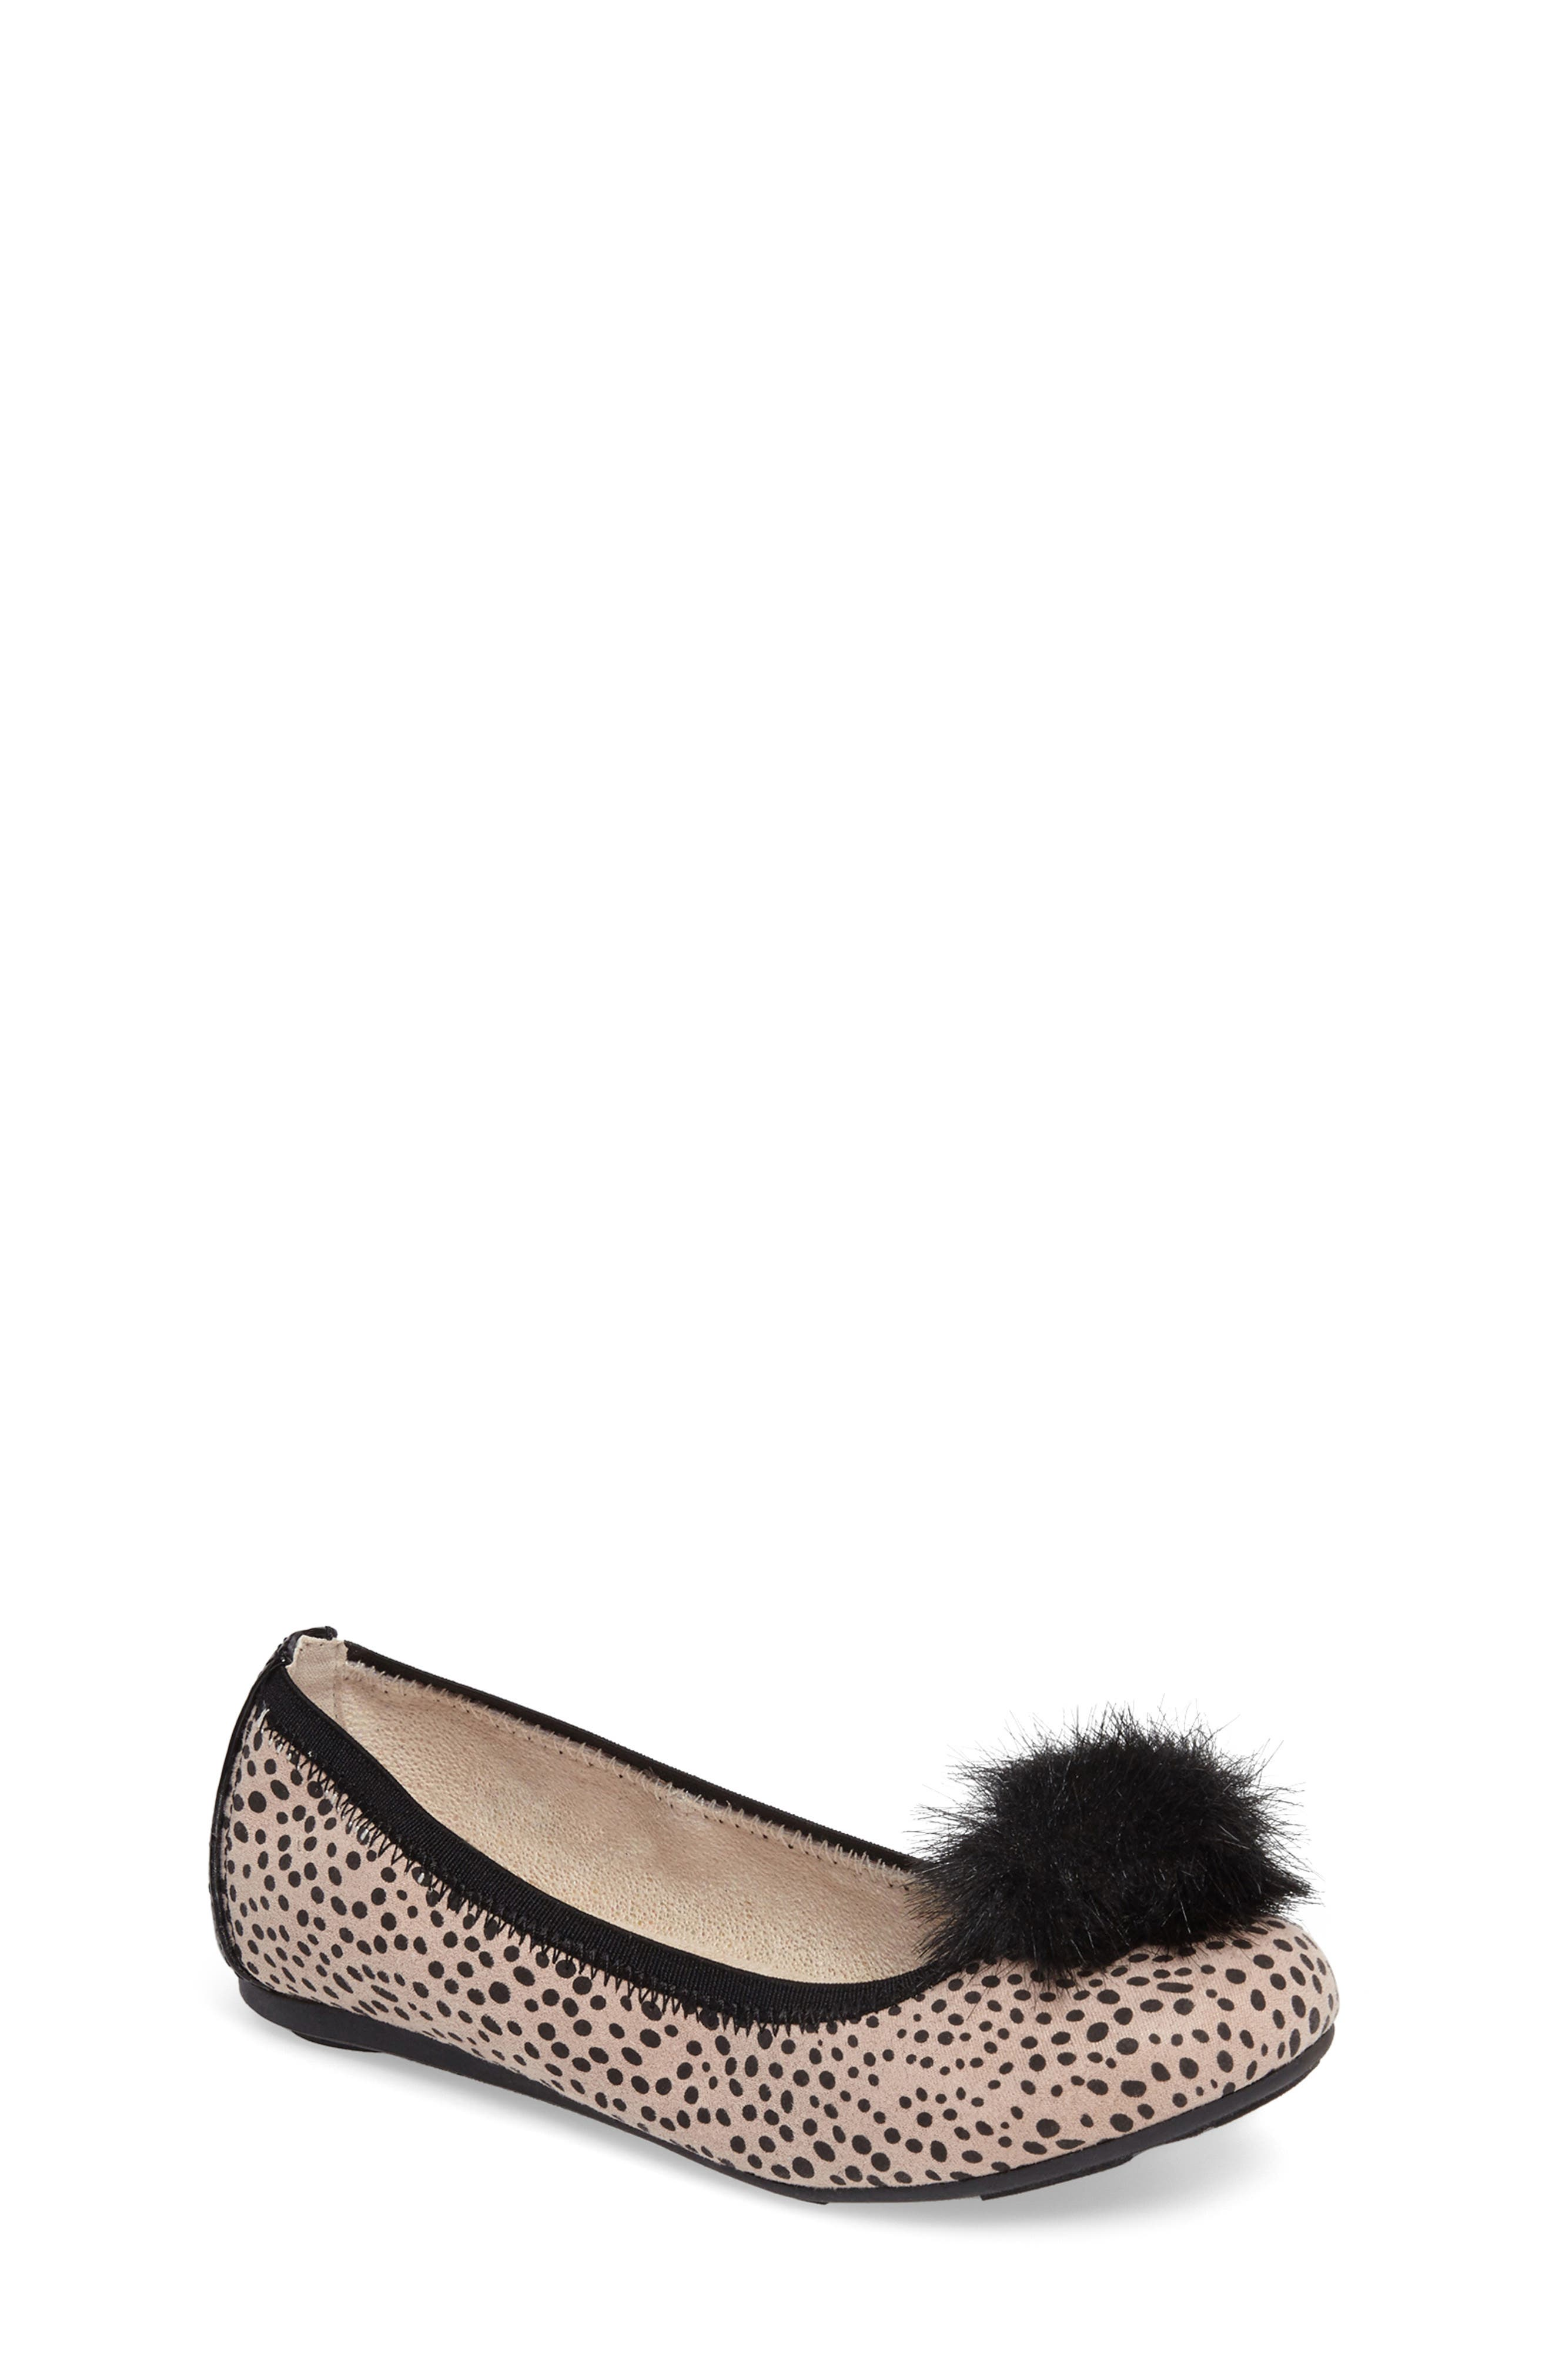 Fannie Cheetah Faux Fur Pom Flat,                         Main,                         color, 012